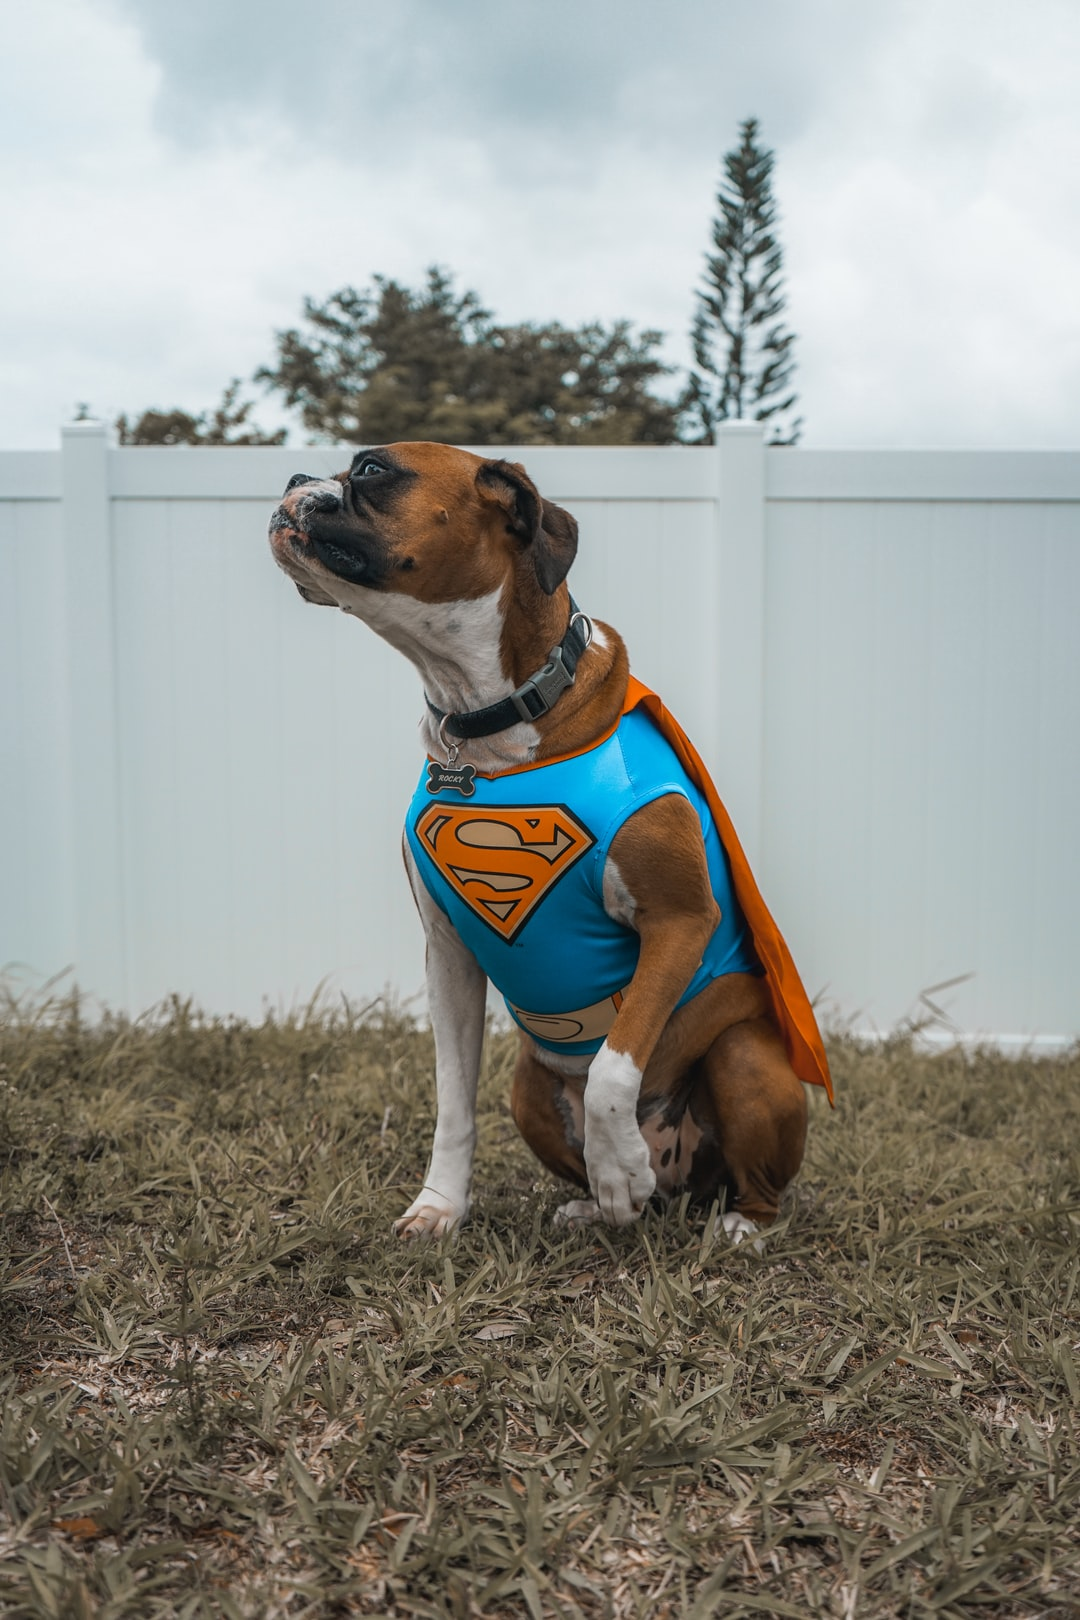 This is my dog in a Superman Costume. It was for his birthday and the photo was taken in my backyard.